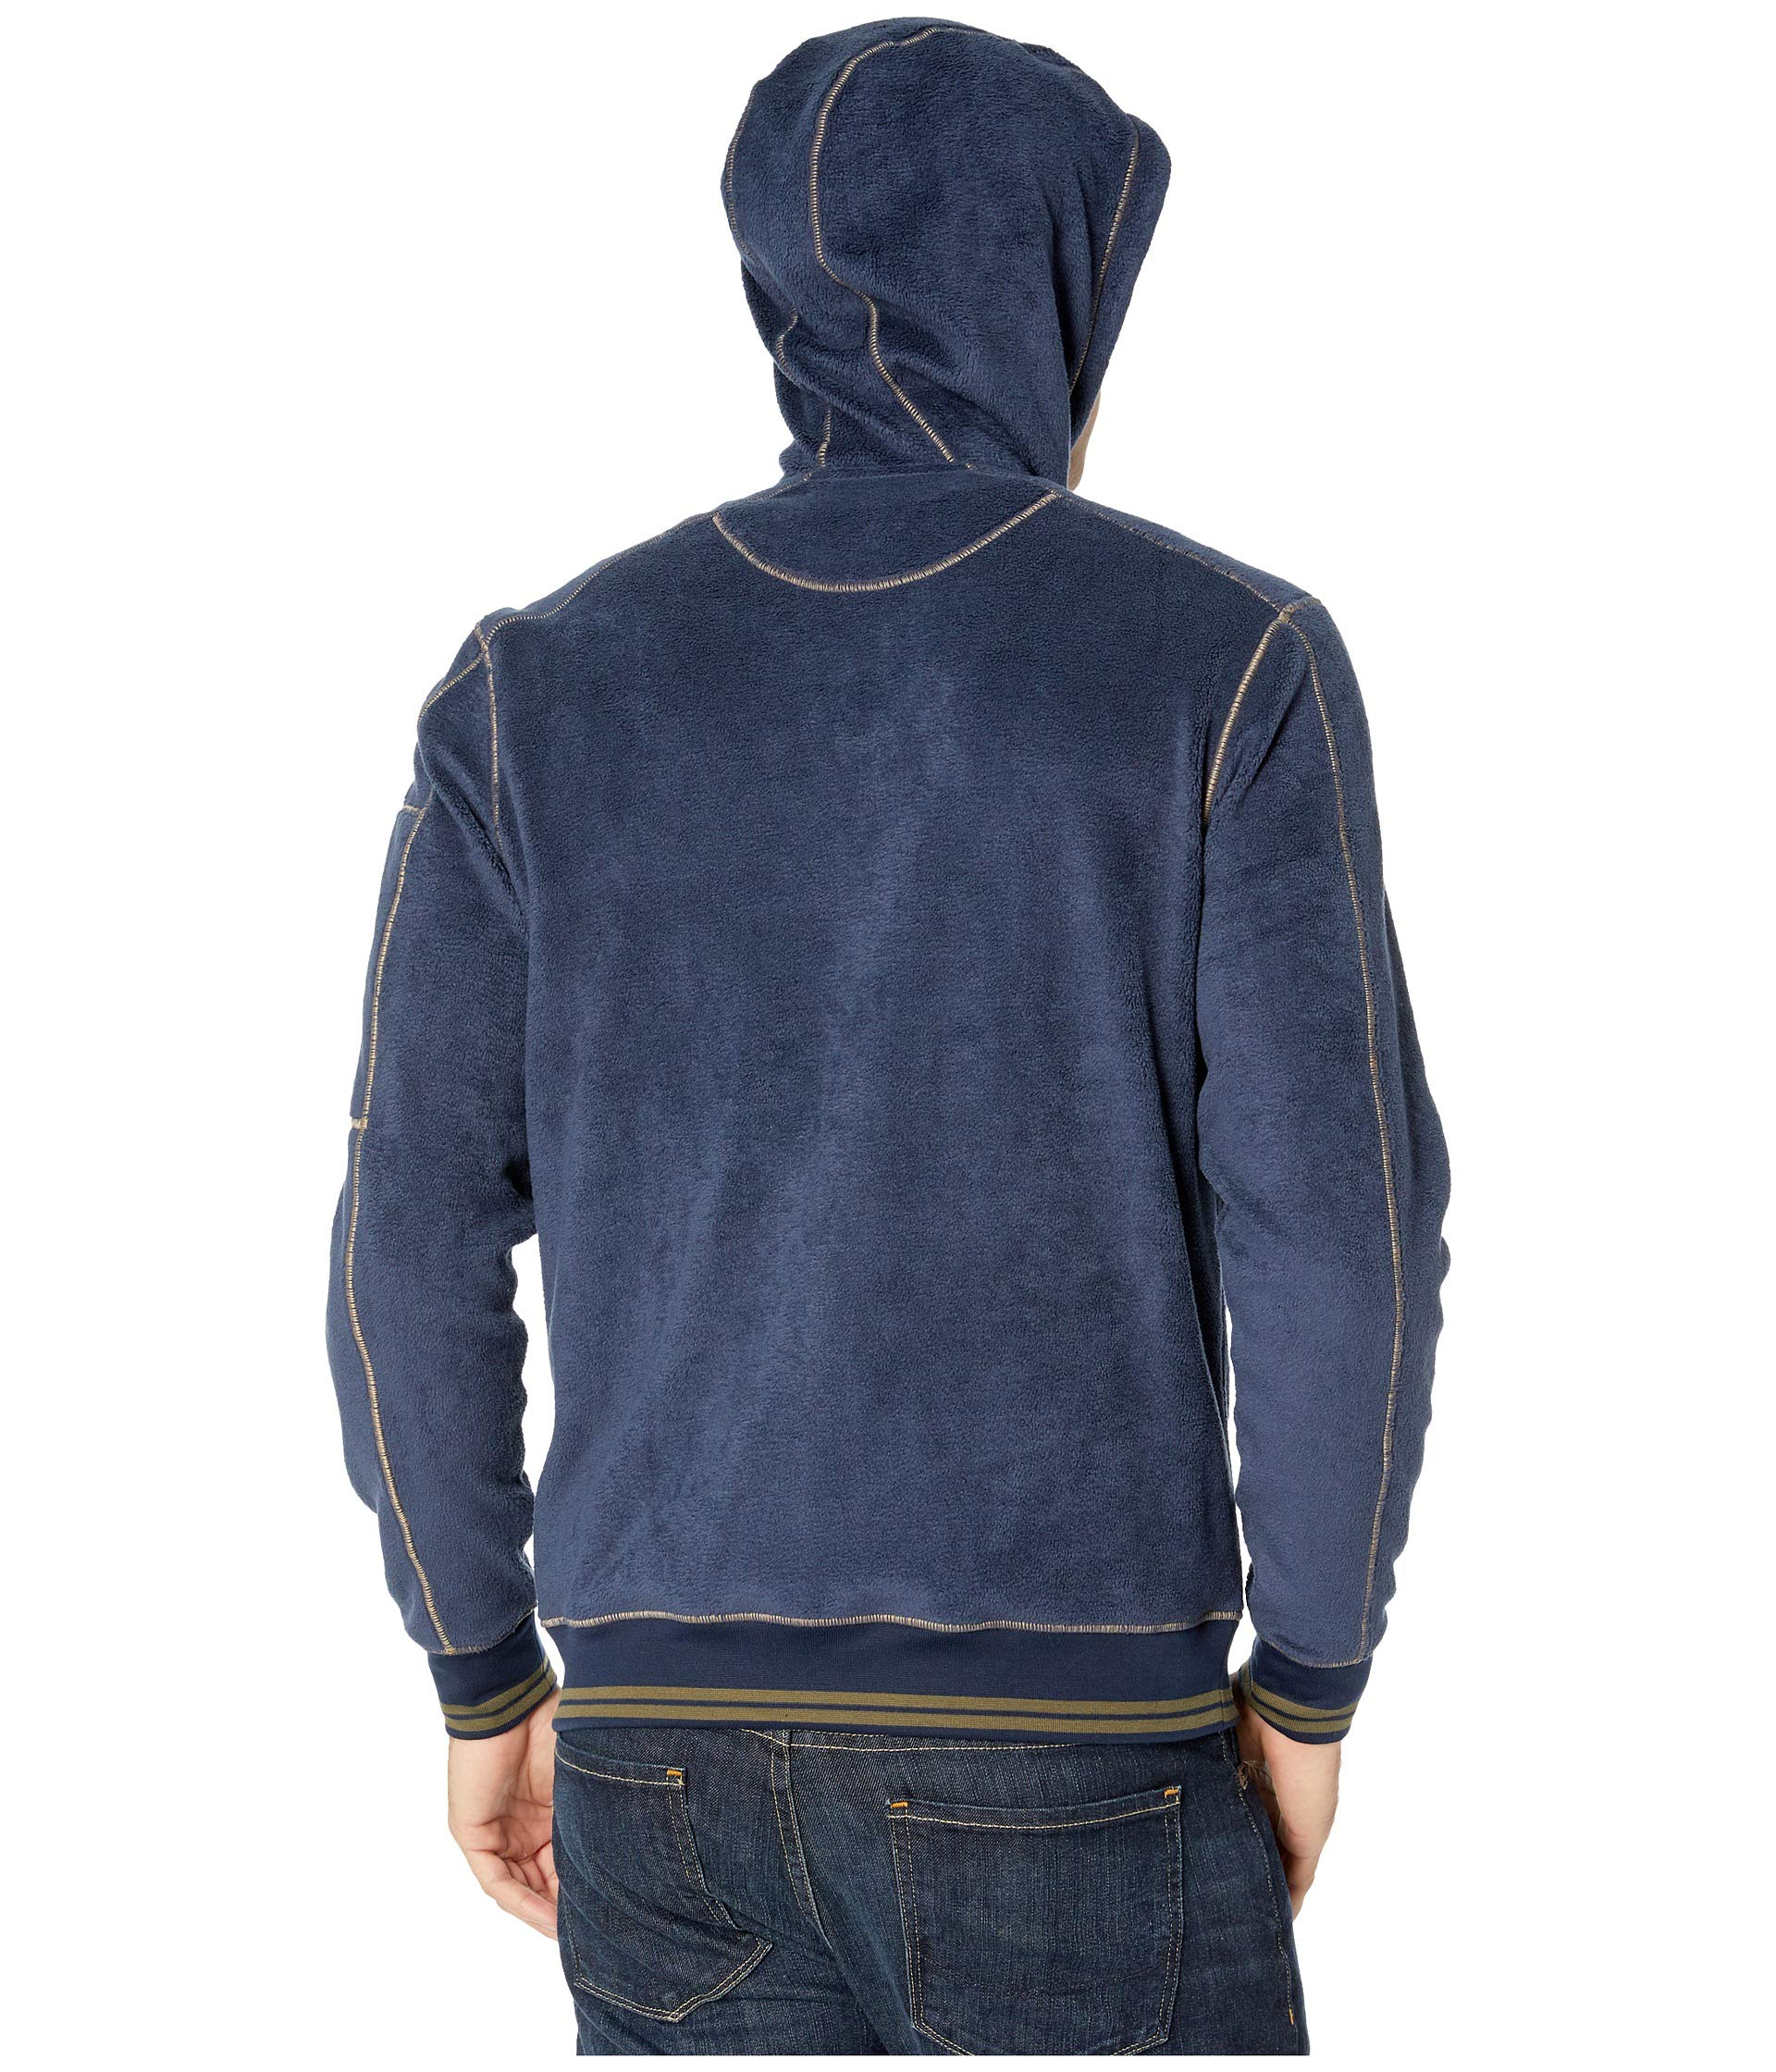 Hoodie Zip Cashmoore amp;co Toad Navy Deep OZ1qxw